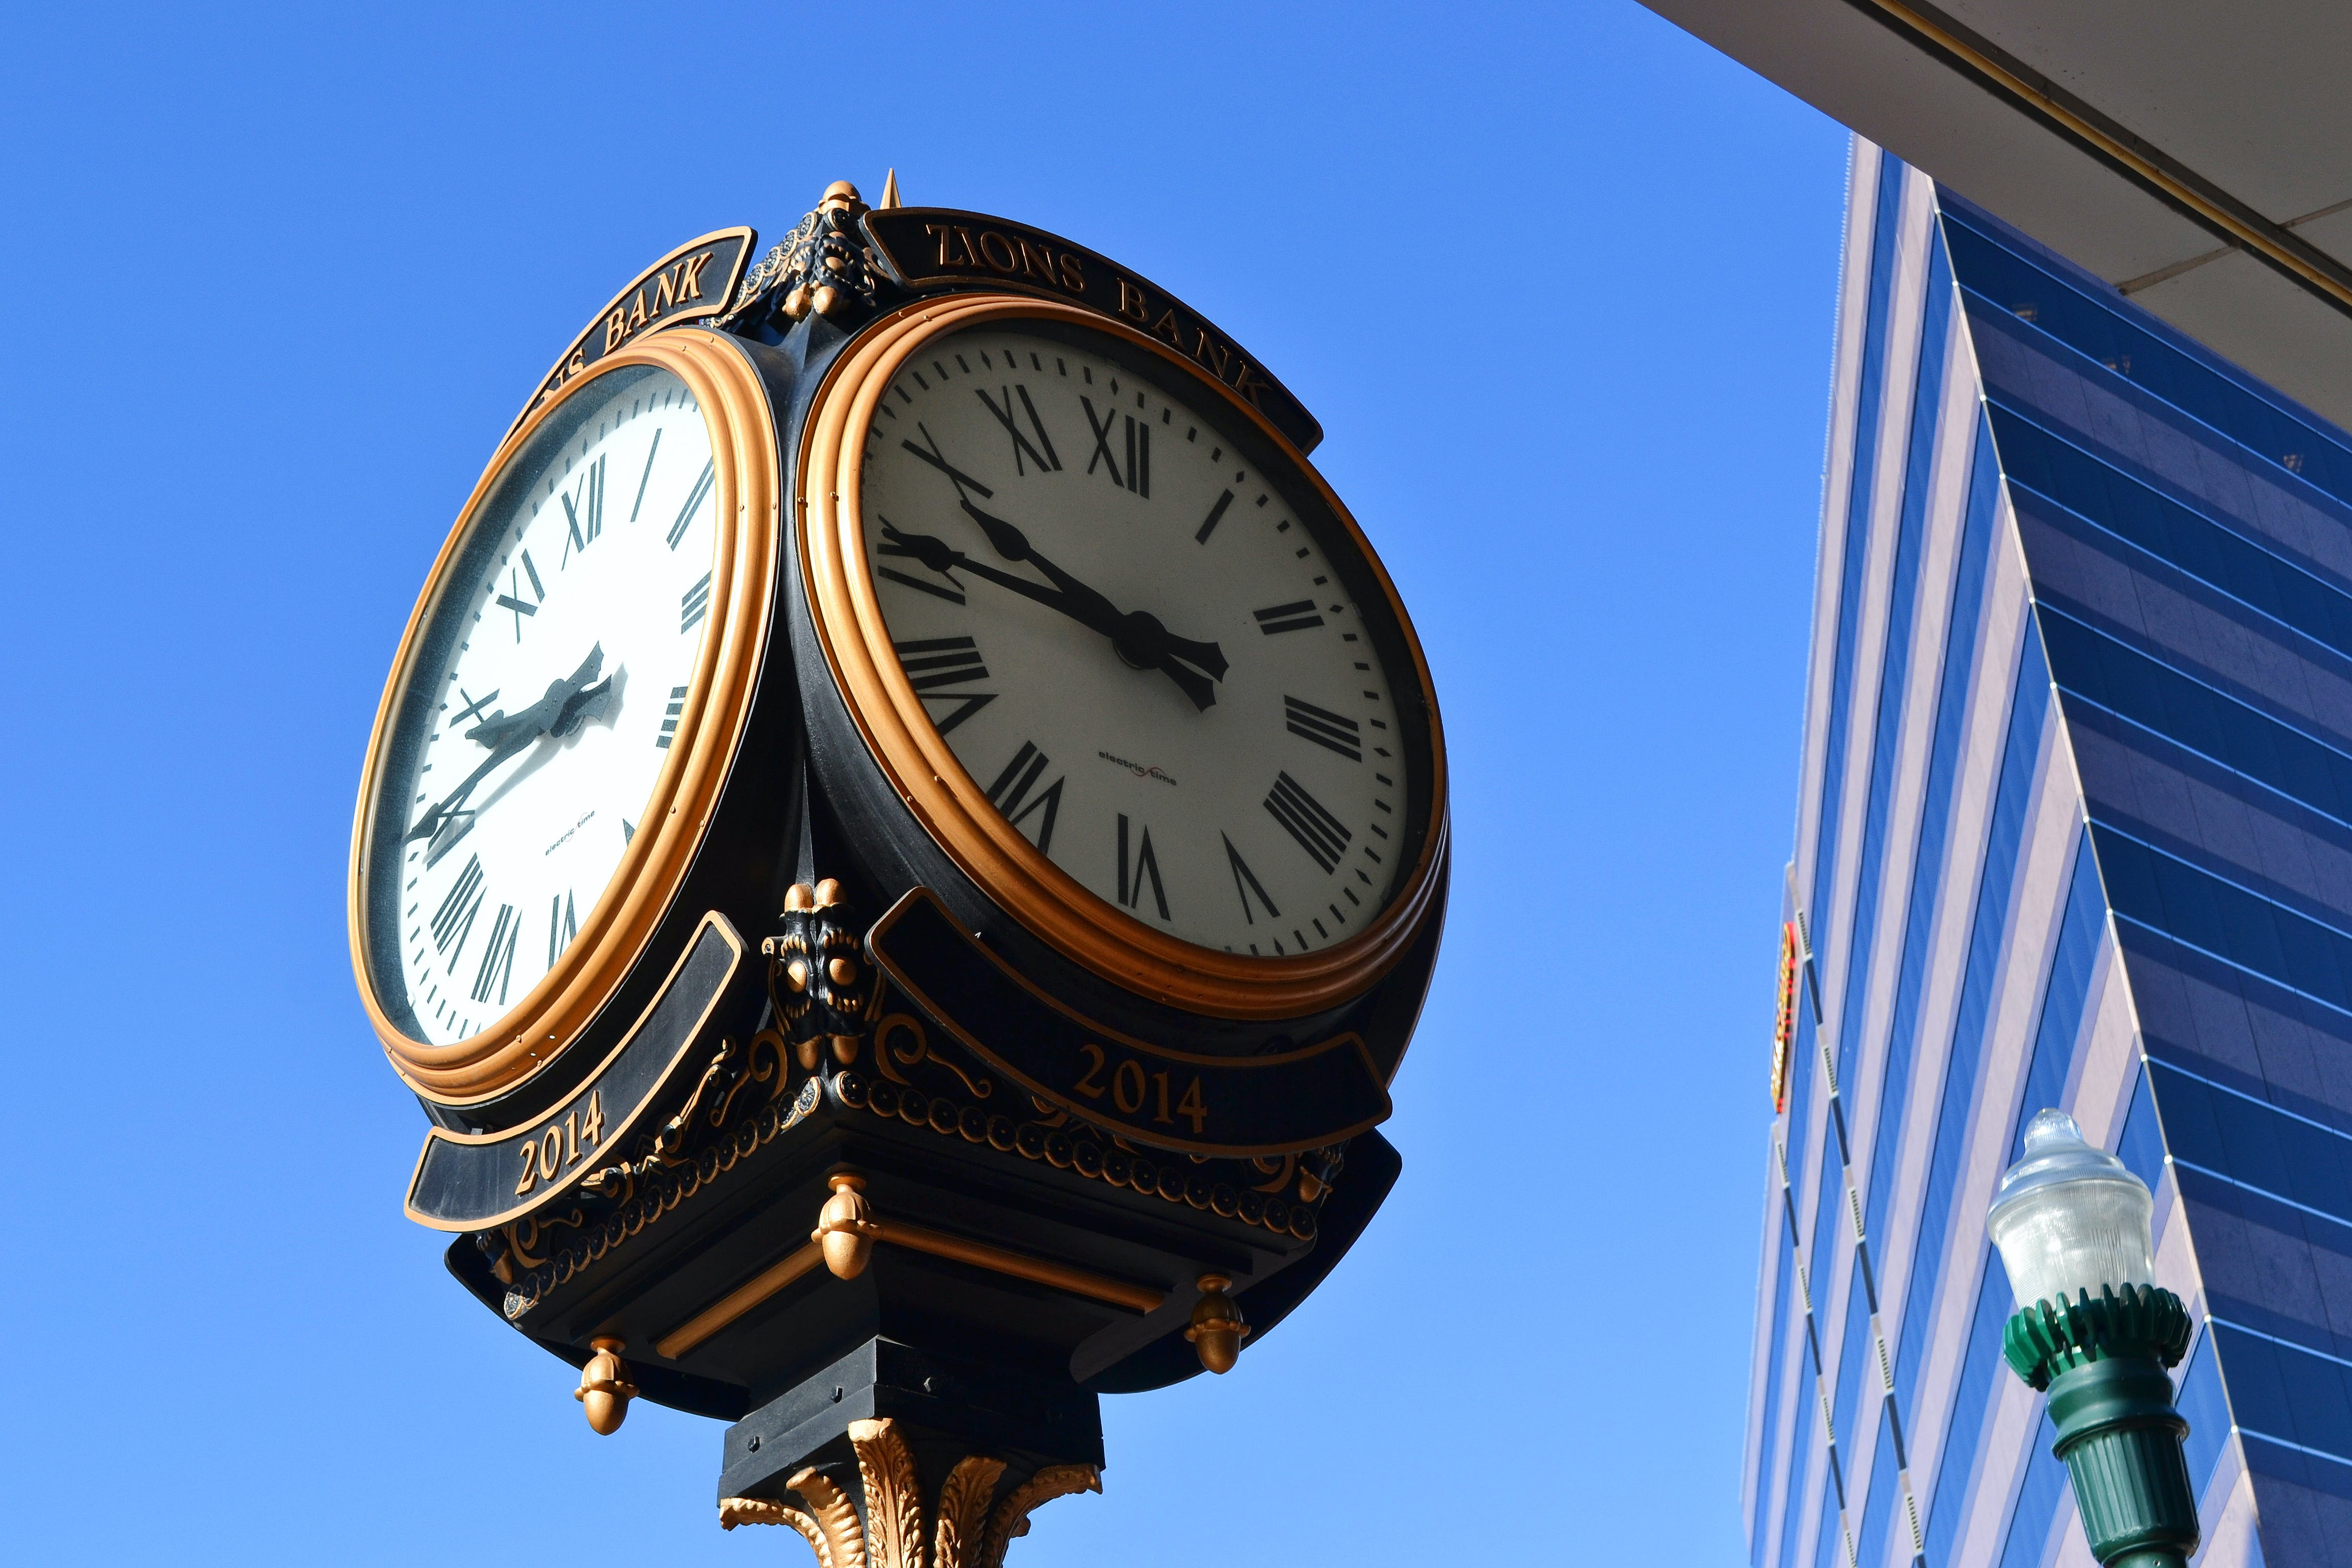 Close-up Photo of Street Clock Near Tall Building